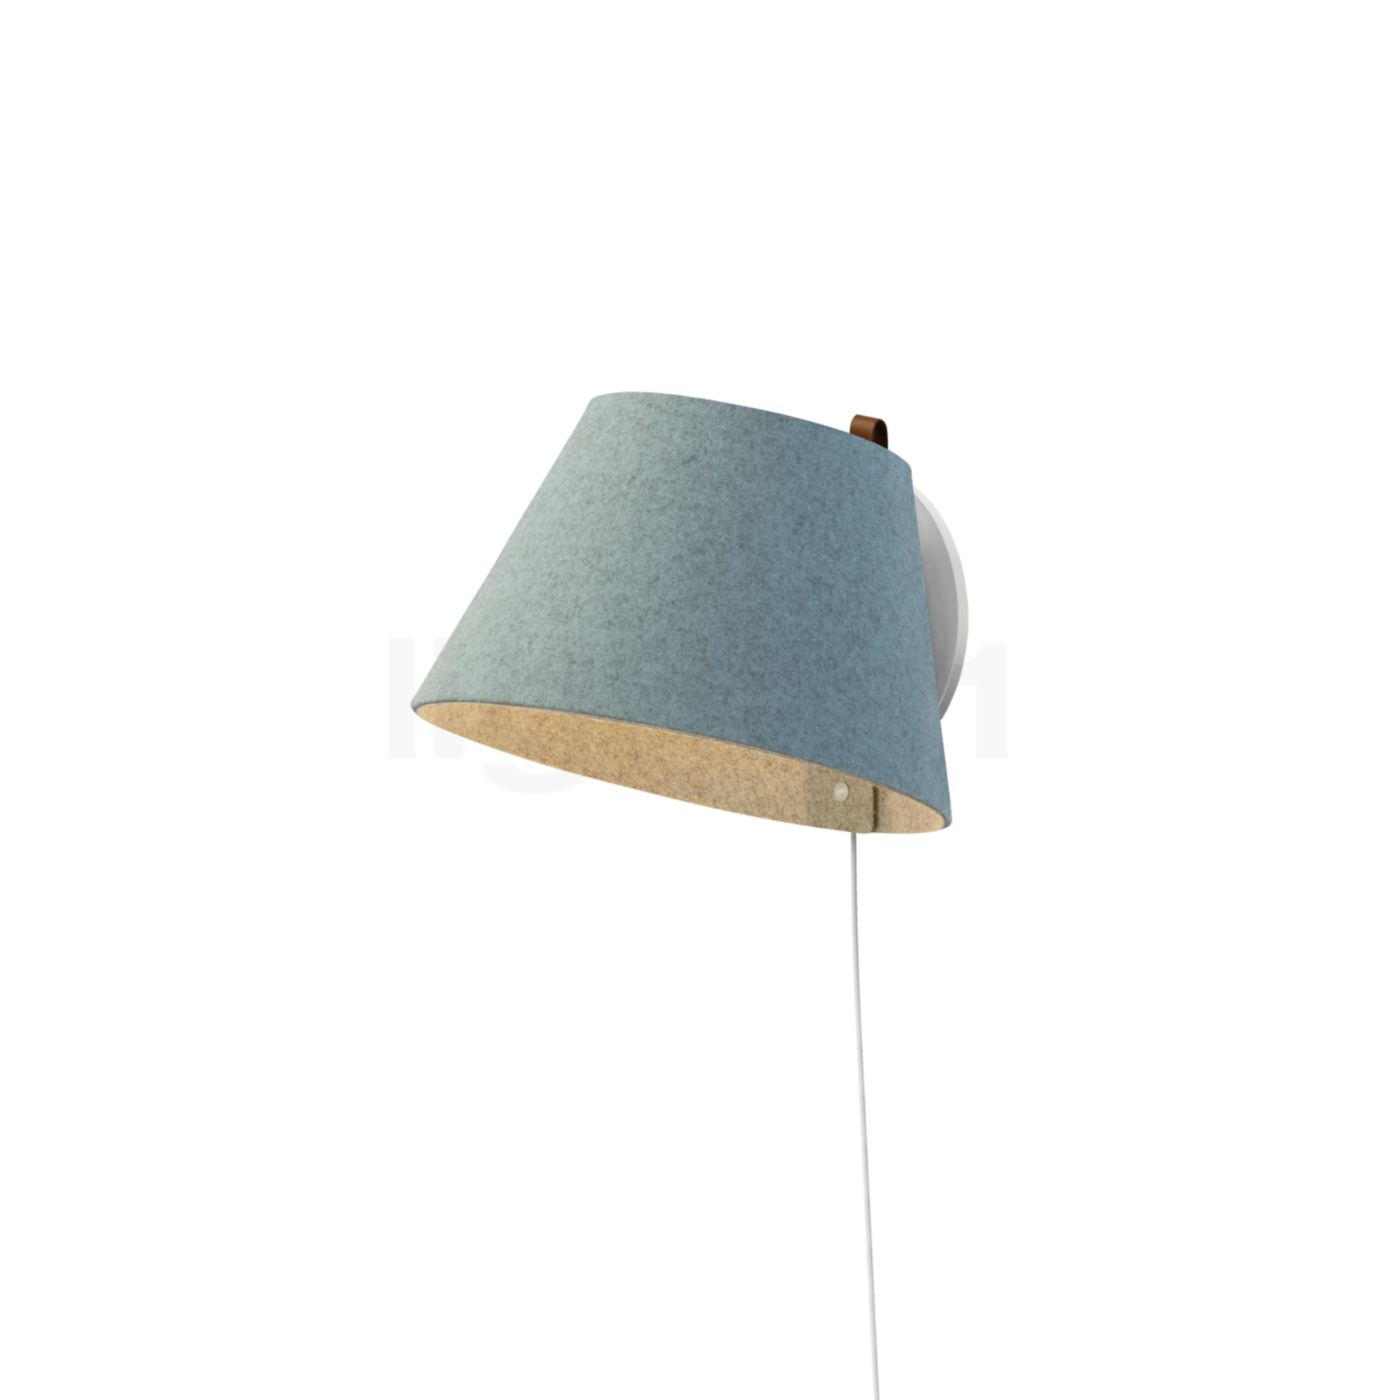 Wandleuchte Led Blau Pablo Designs Lana Wandleuchte Small Led Light11 De